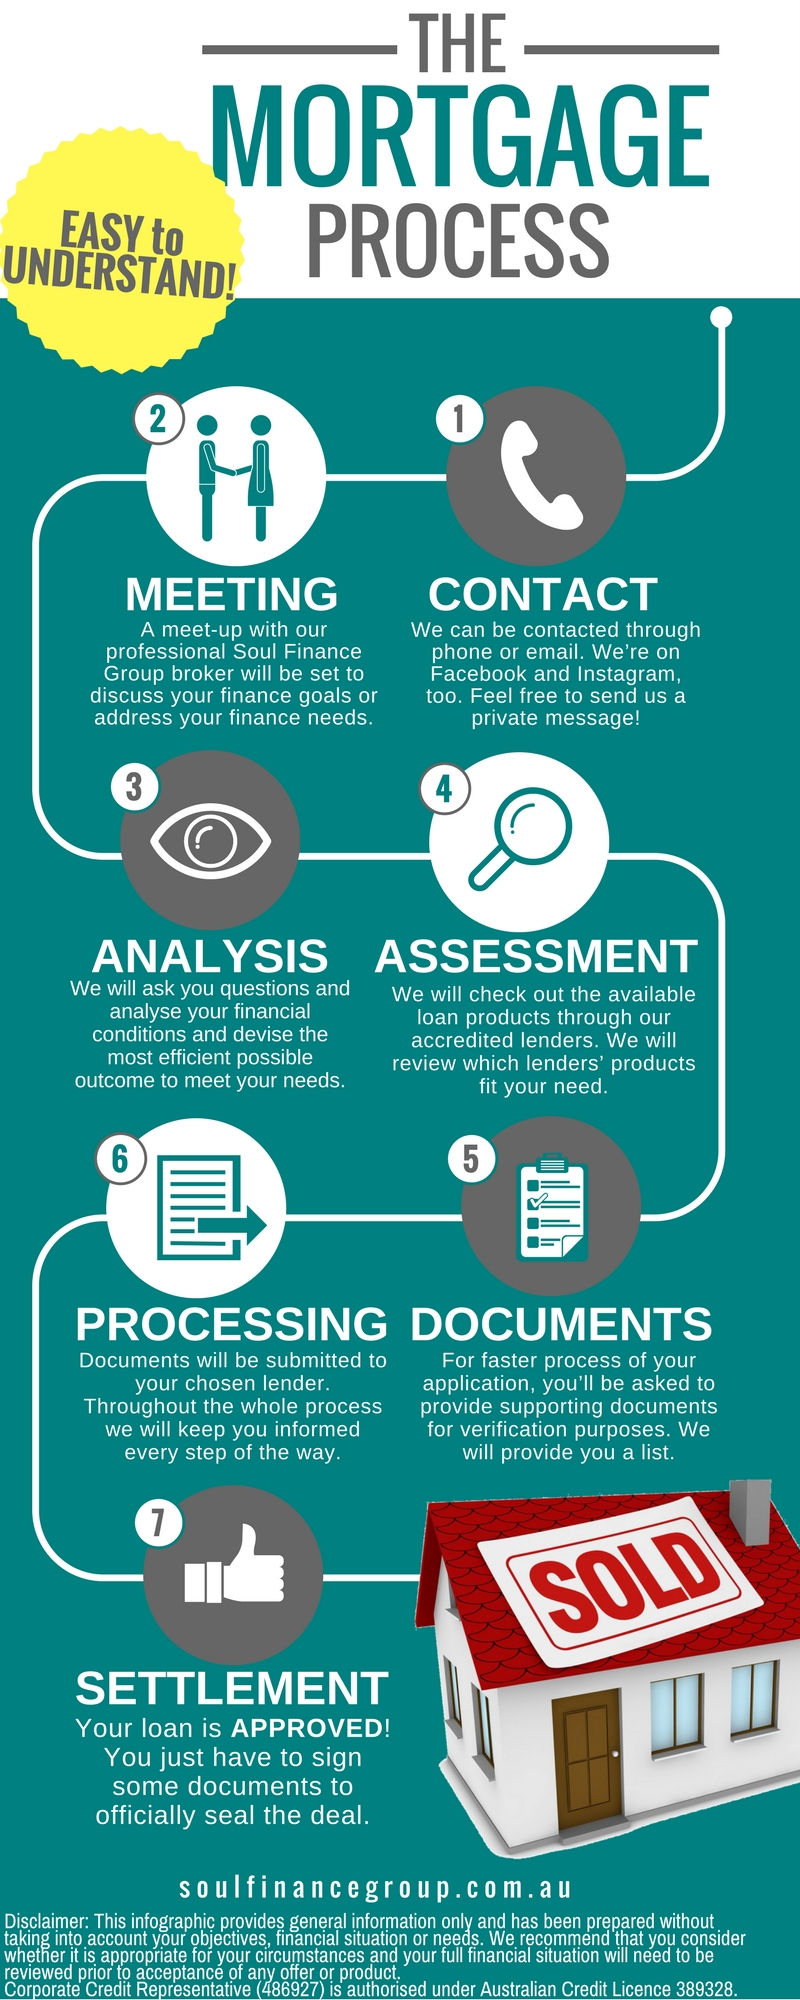 Loan Application Process Infographic Google Search Mortgage Process Sell My House Fast Finance